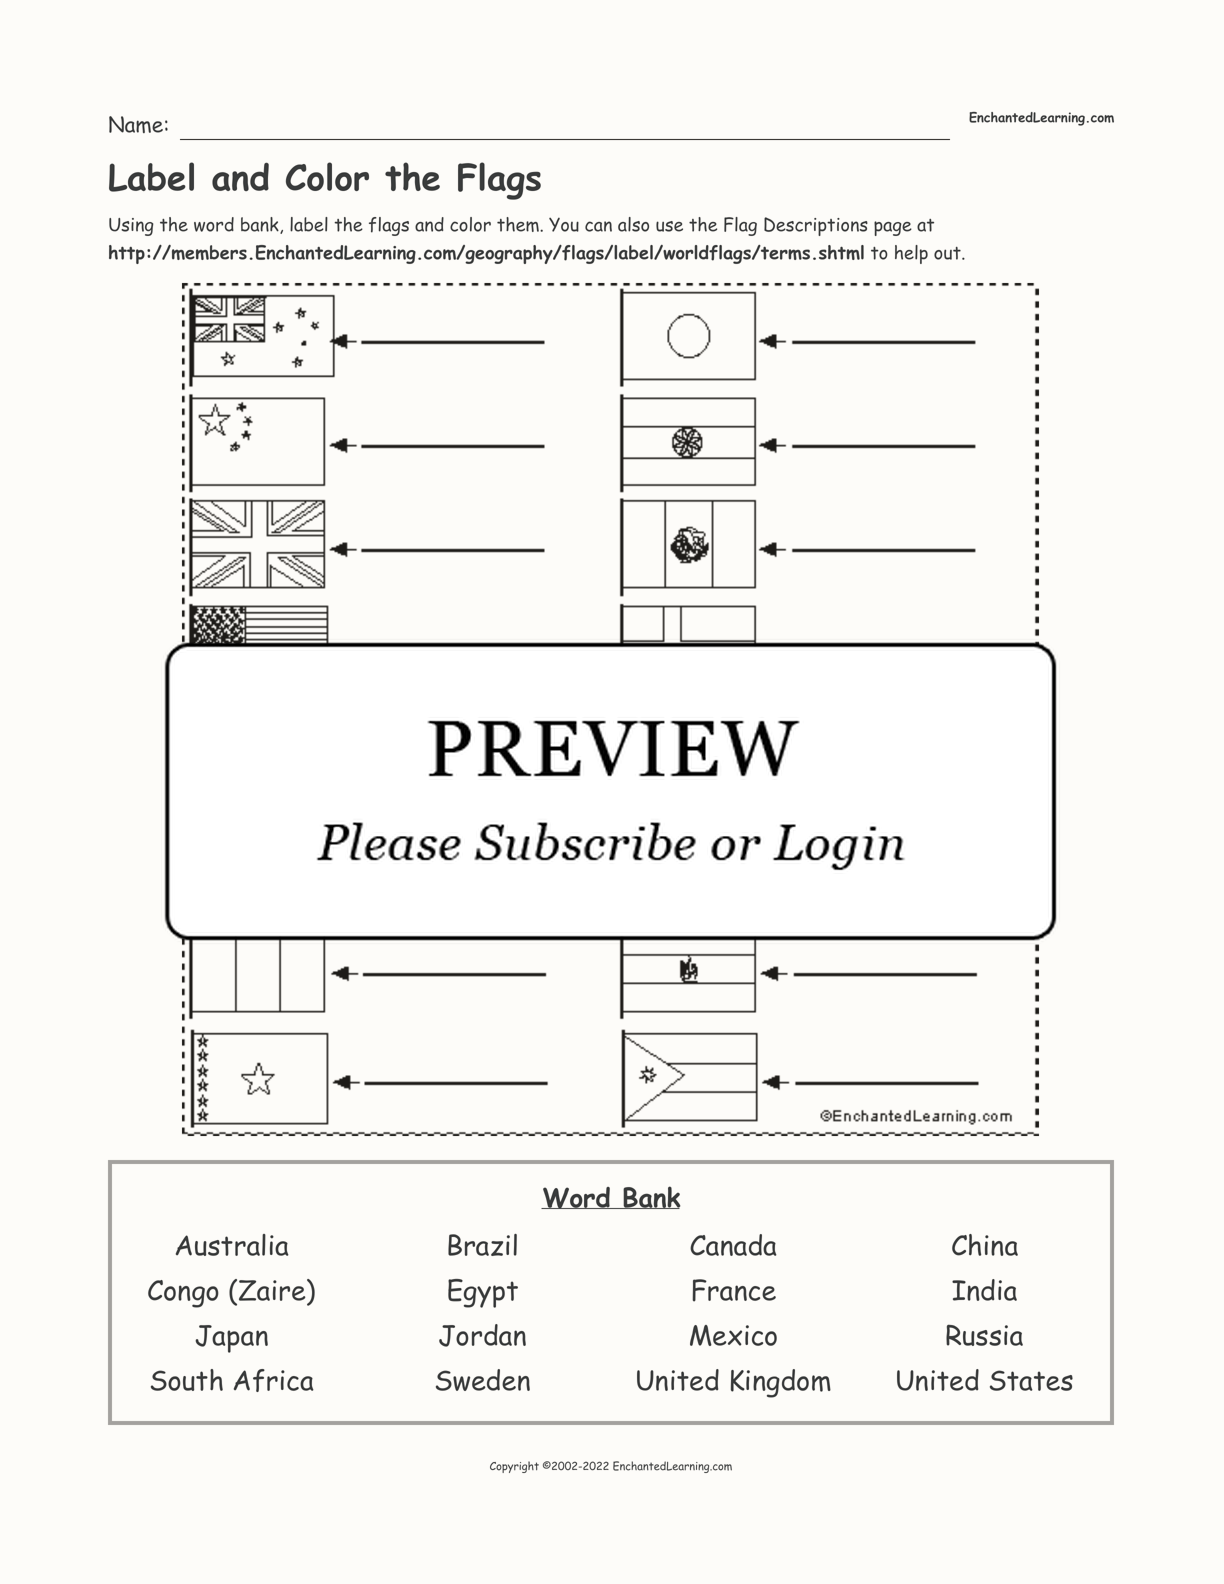 Label and Color the Flags interactive worksheet page 1